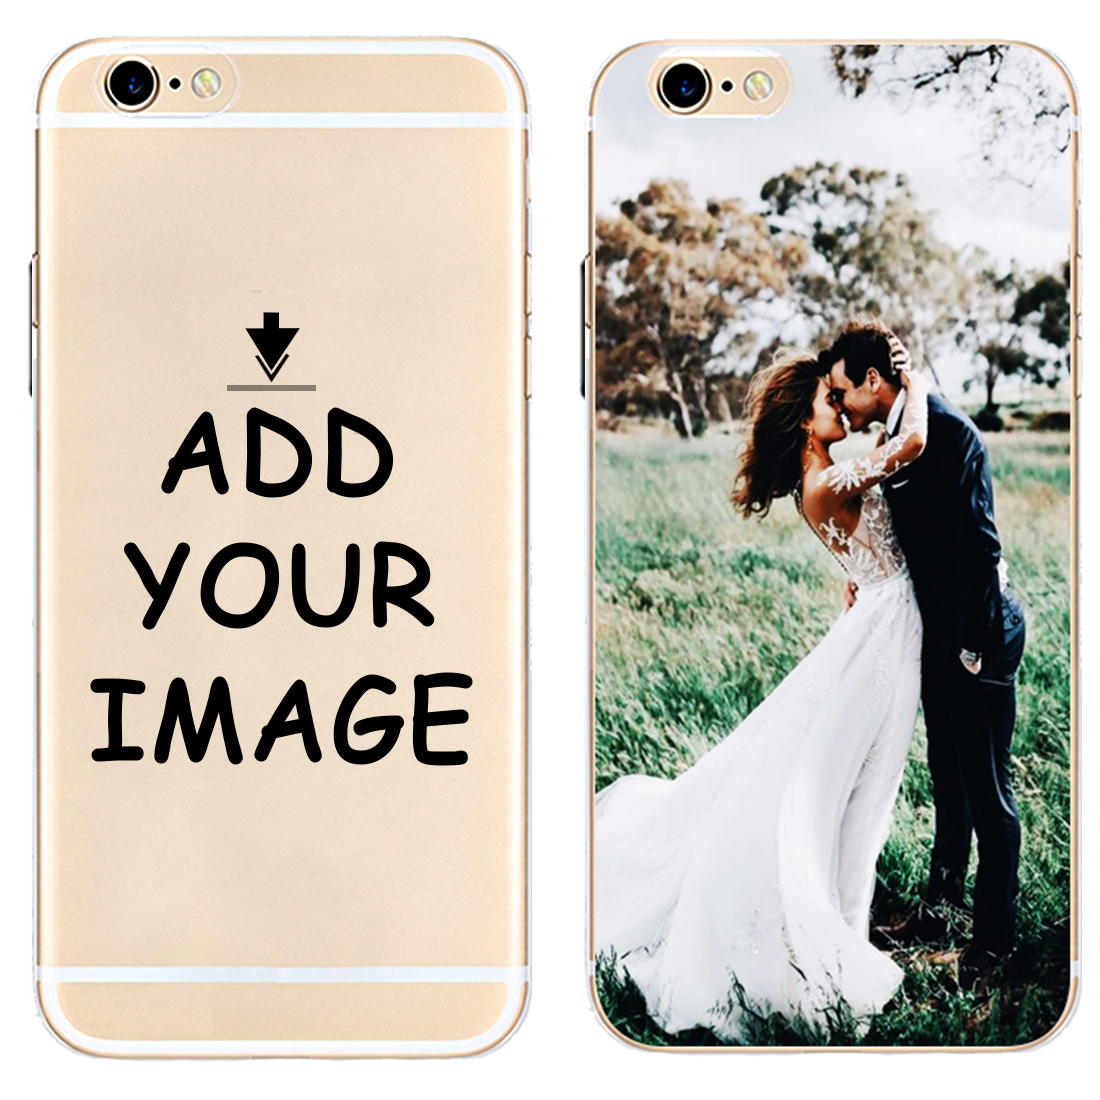 Custom Personalized Make your Photo pattern images Hard Phone Case Cover For iPhone 6 6S 7 8 Plus 5S 5C 4S X XS XR XSMax Coque